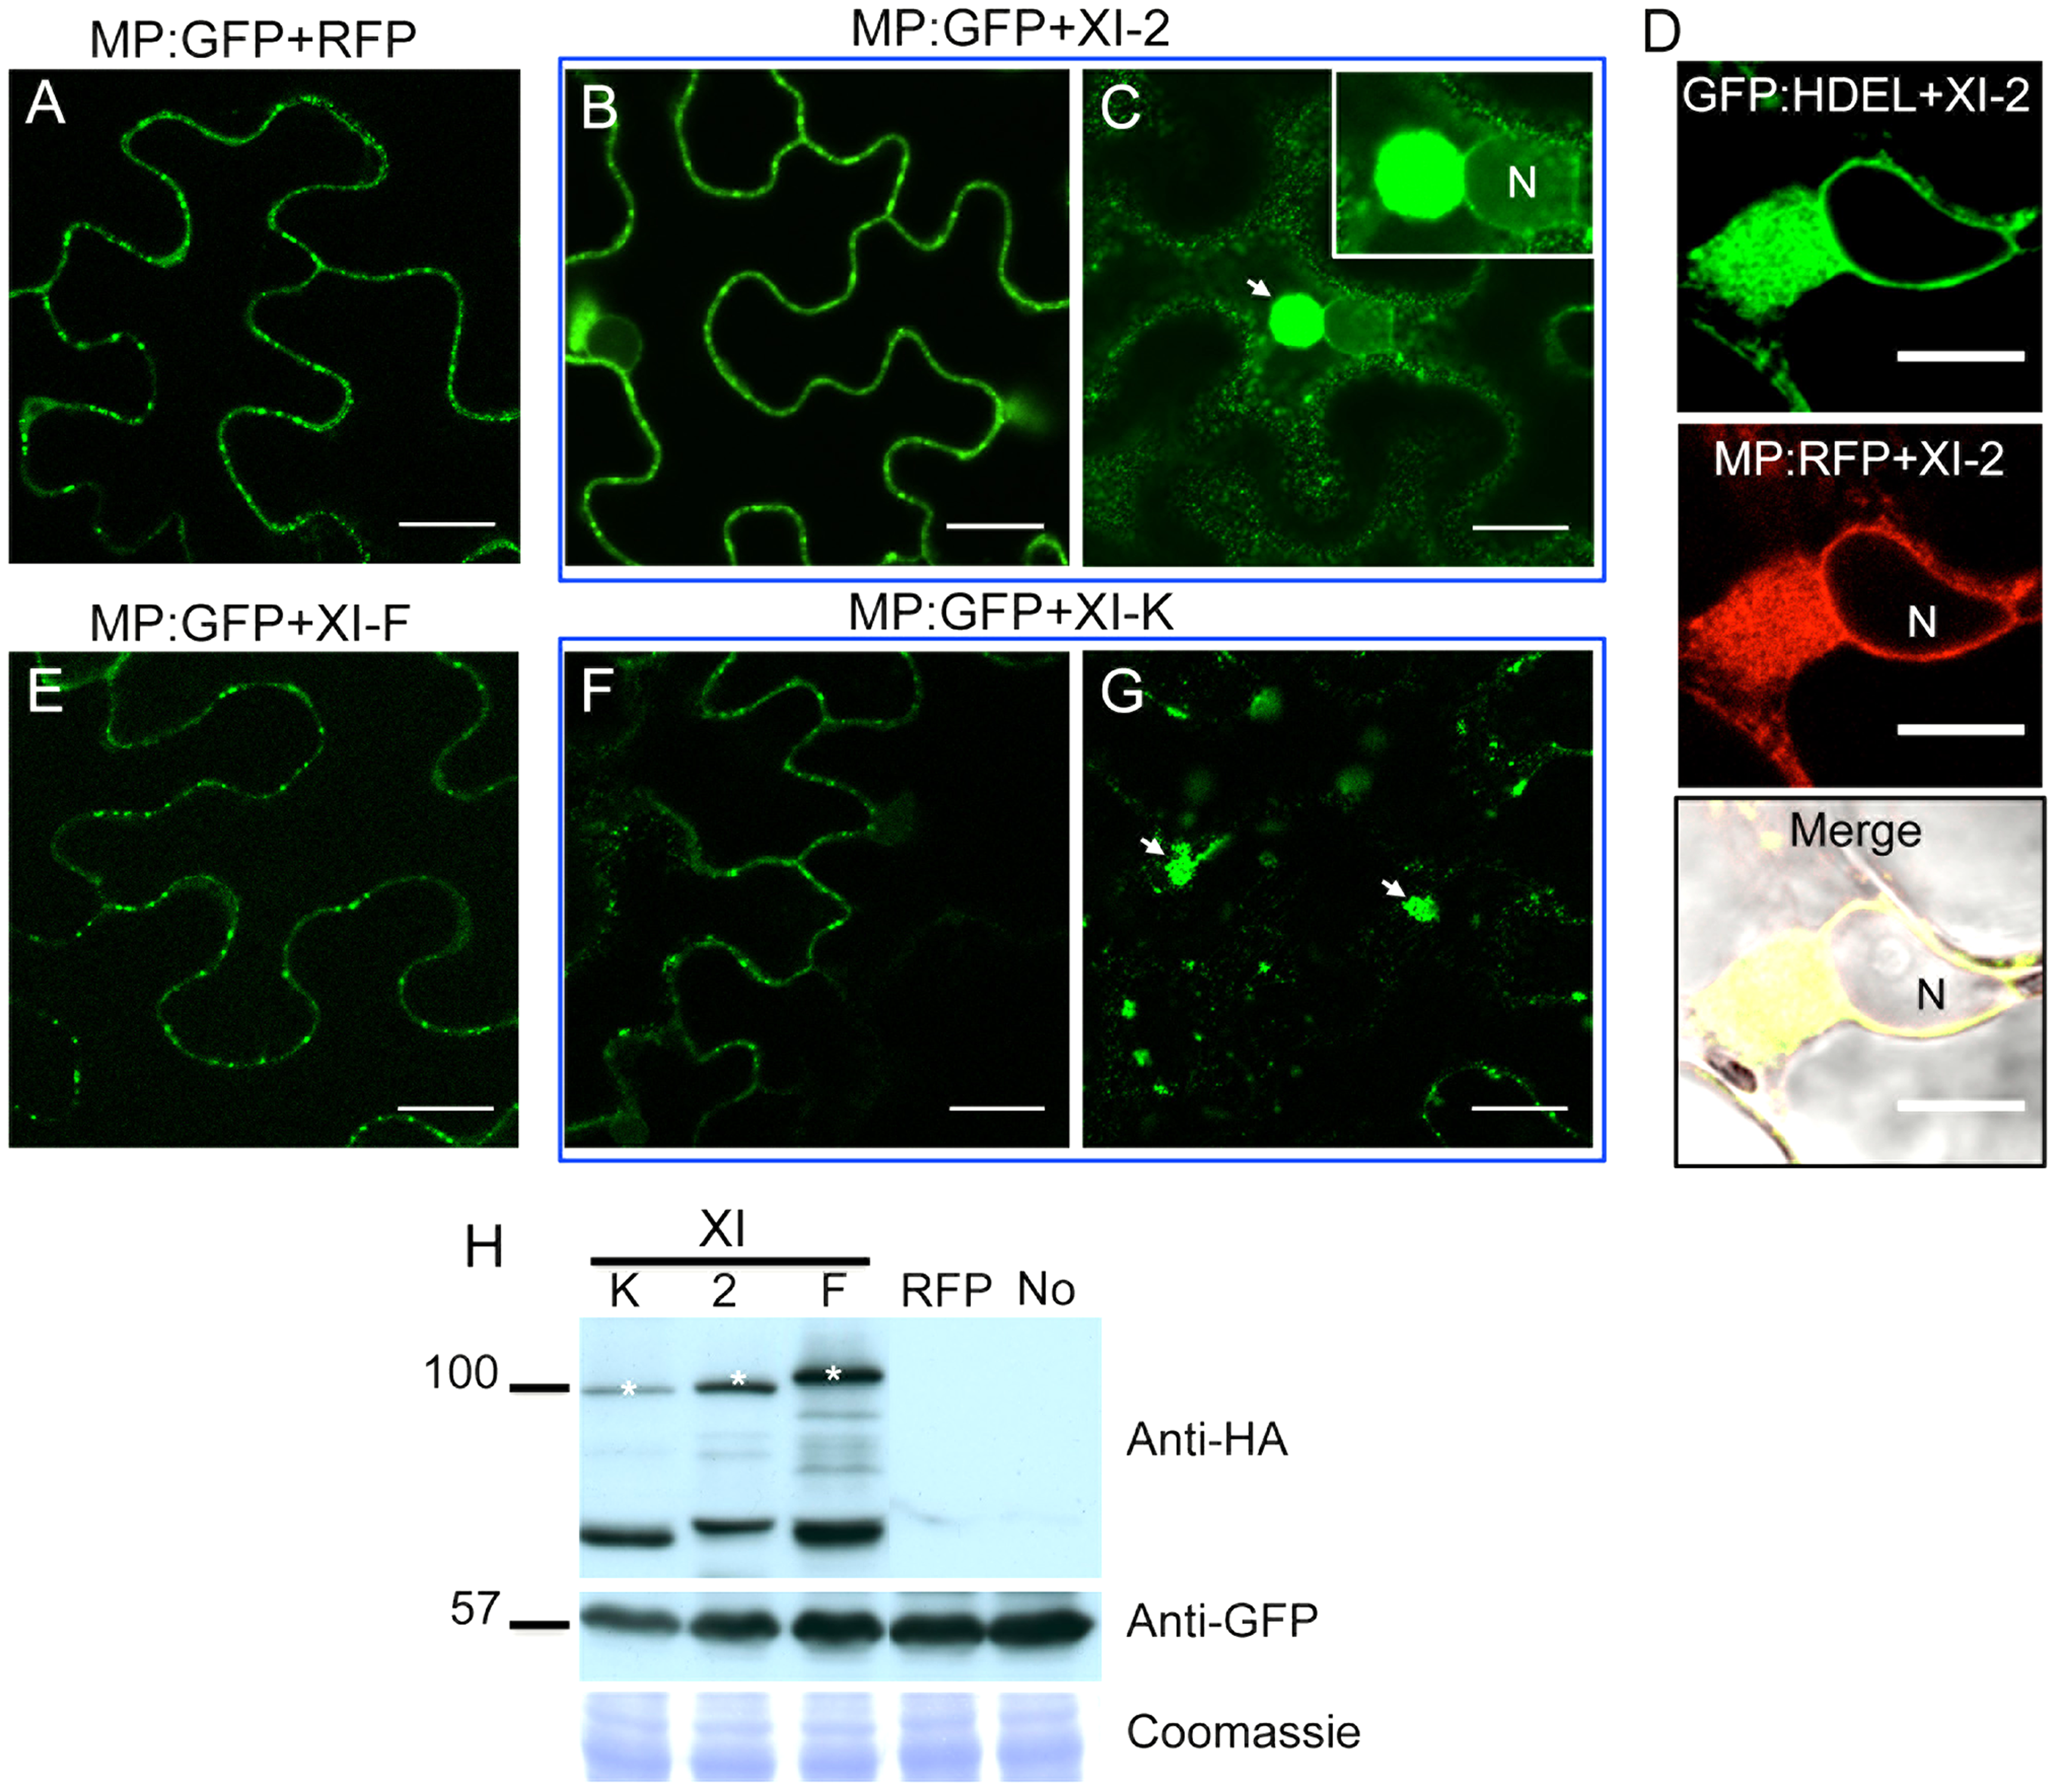 Transient expression of myosin XI-2 and XI-K tails changes the accumulation pattern of the MP.